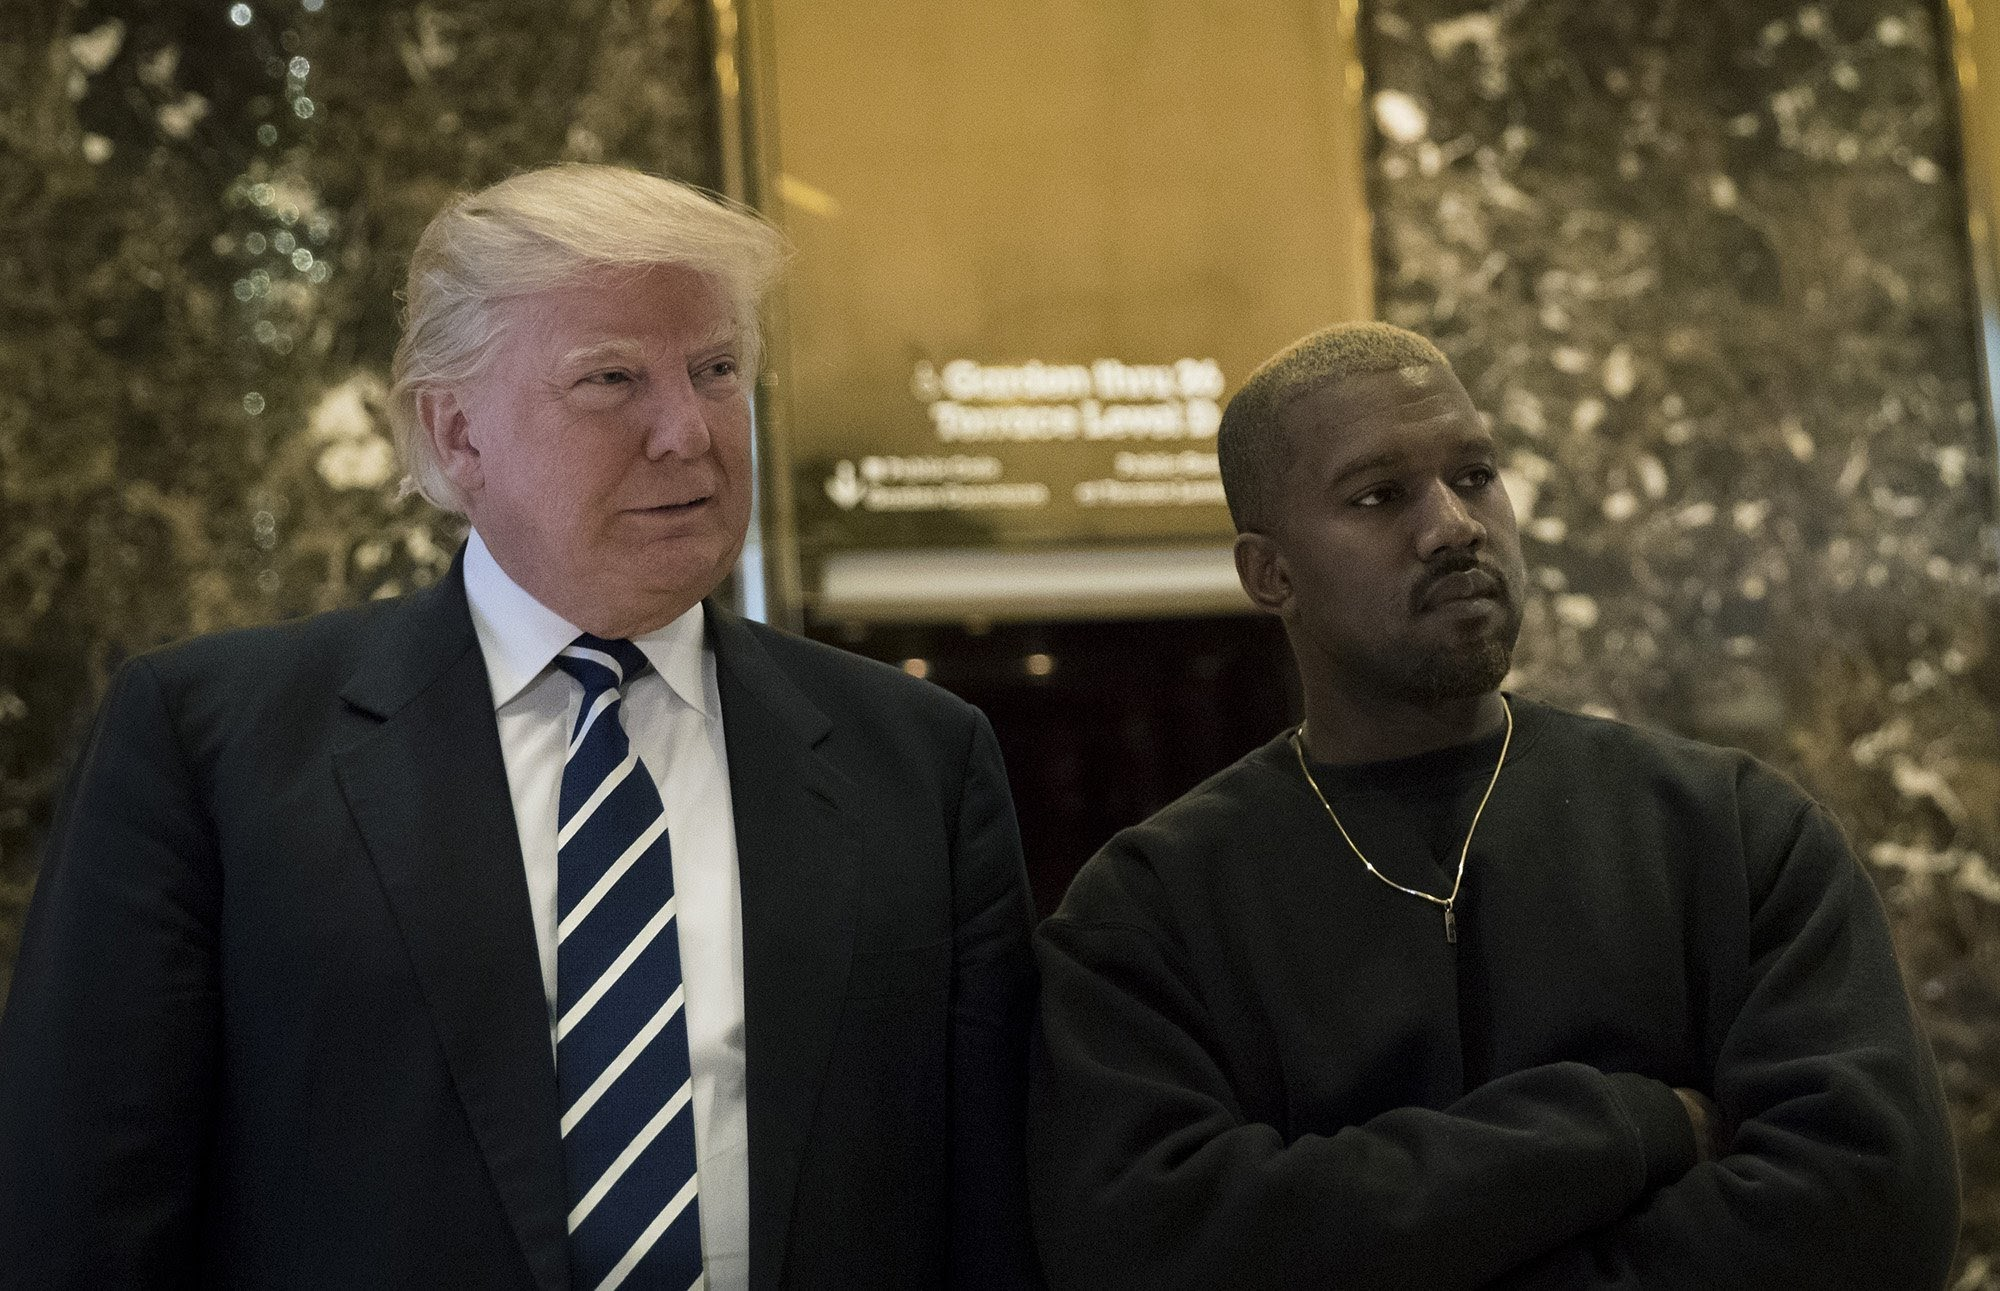 Cartoonist Scott Adams and rapper Kanye West see a coming 'Golden Age' for the U.S.